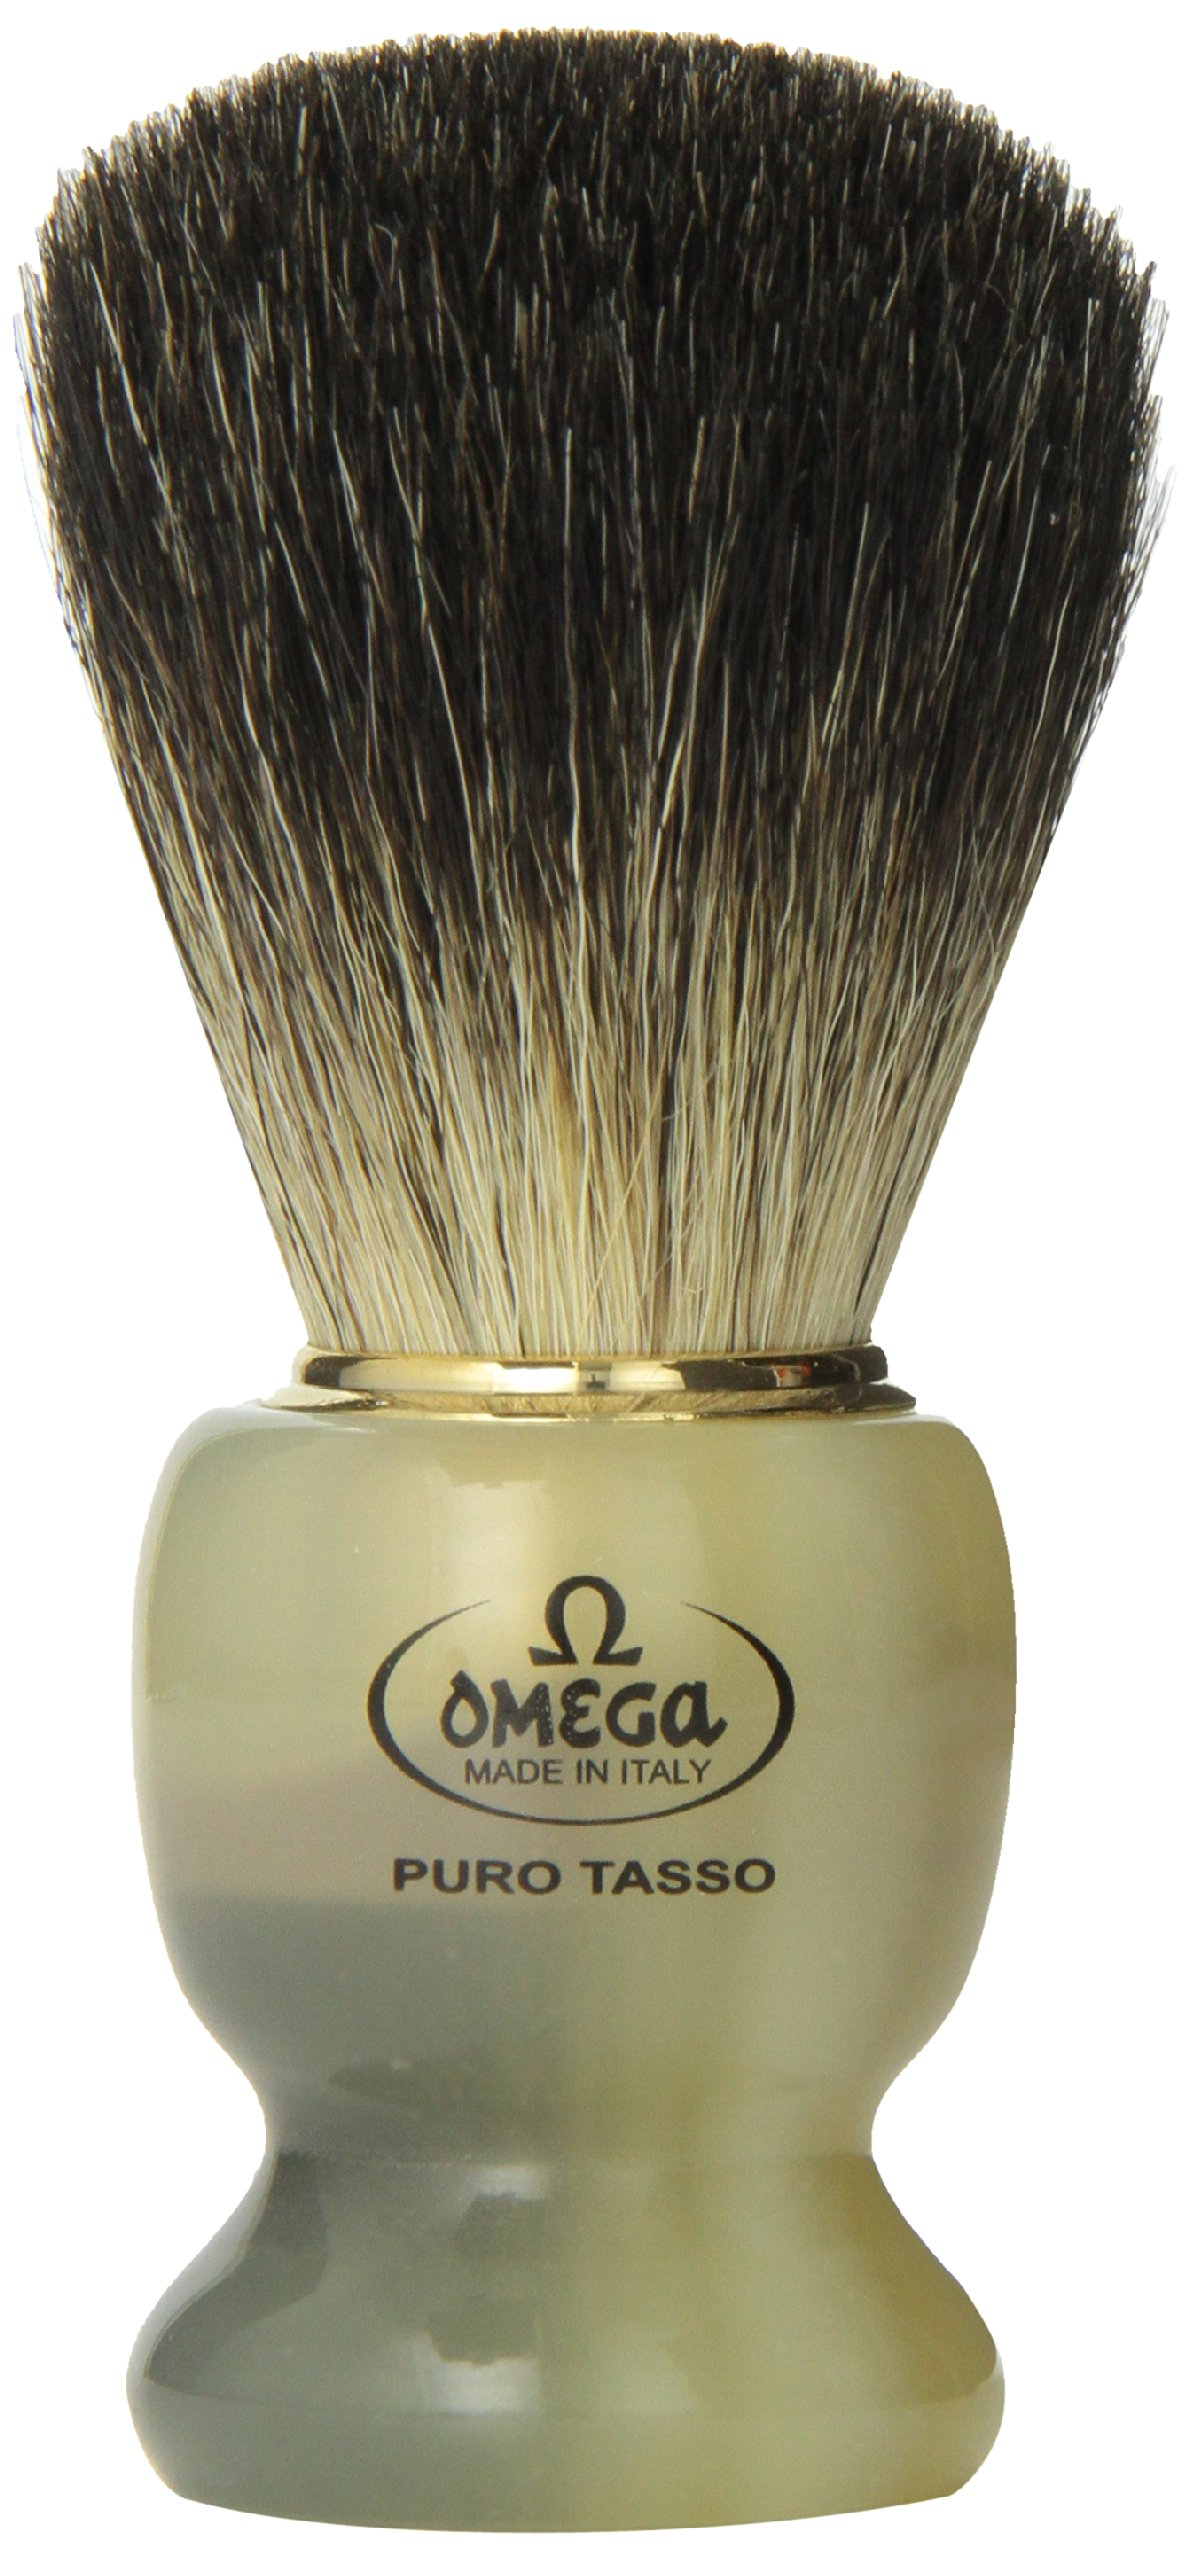 Omega 63171 Stripey 100% Pure Badger Shaving Brush with Stand by Omega